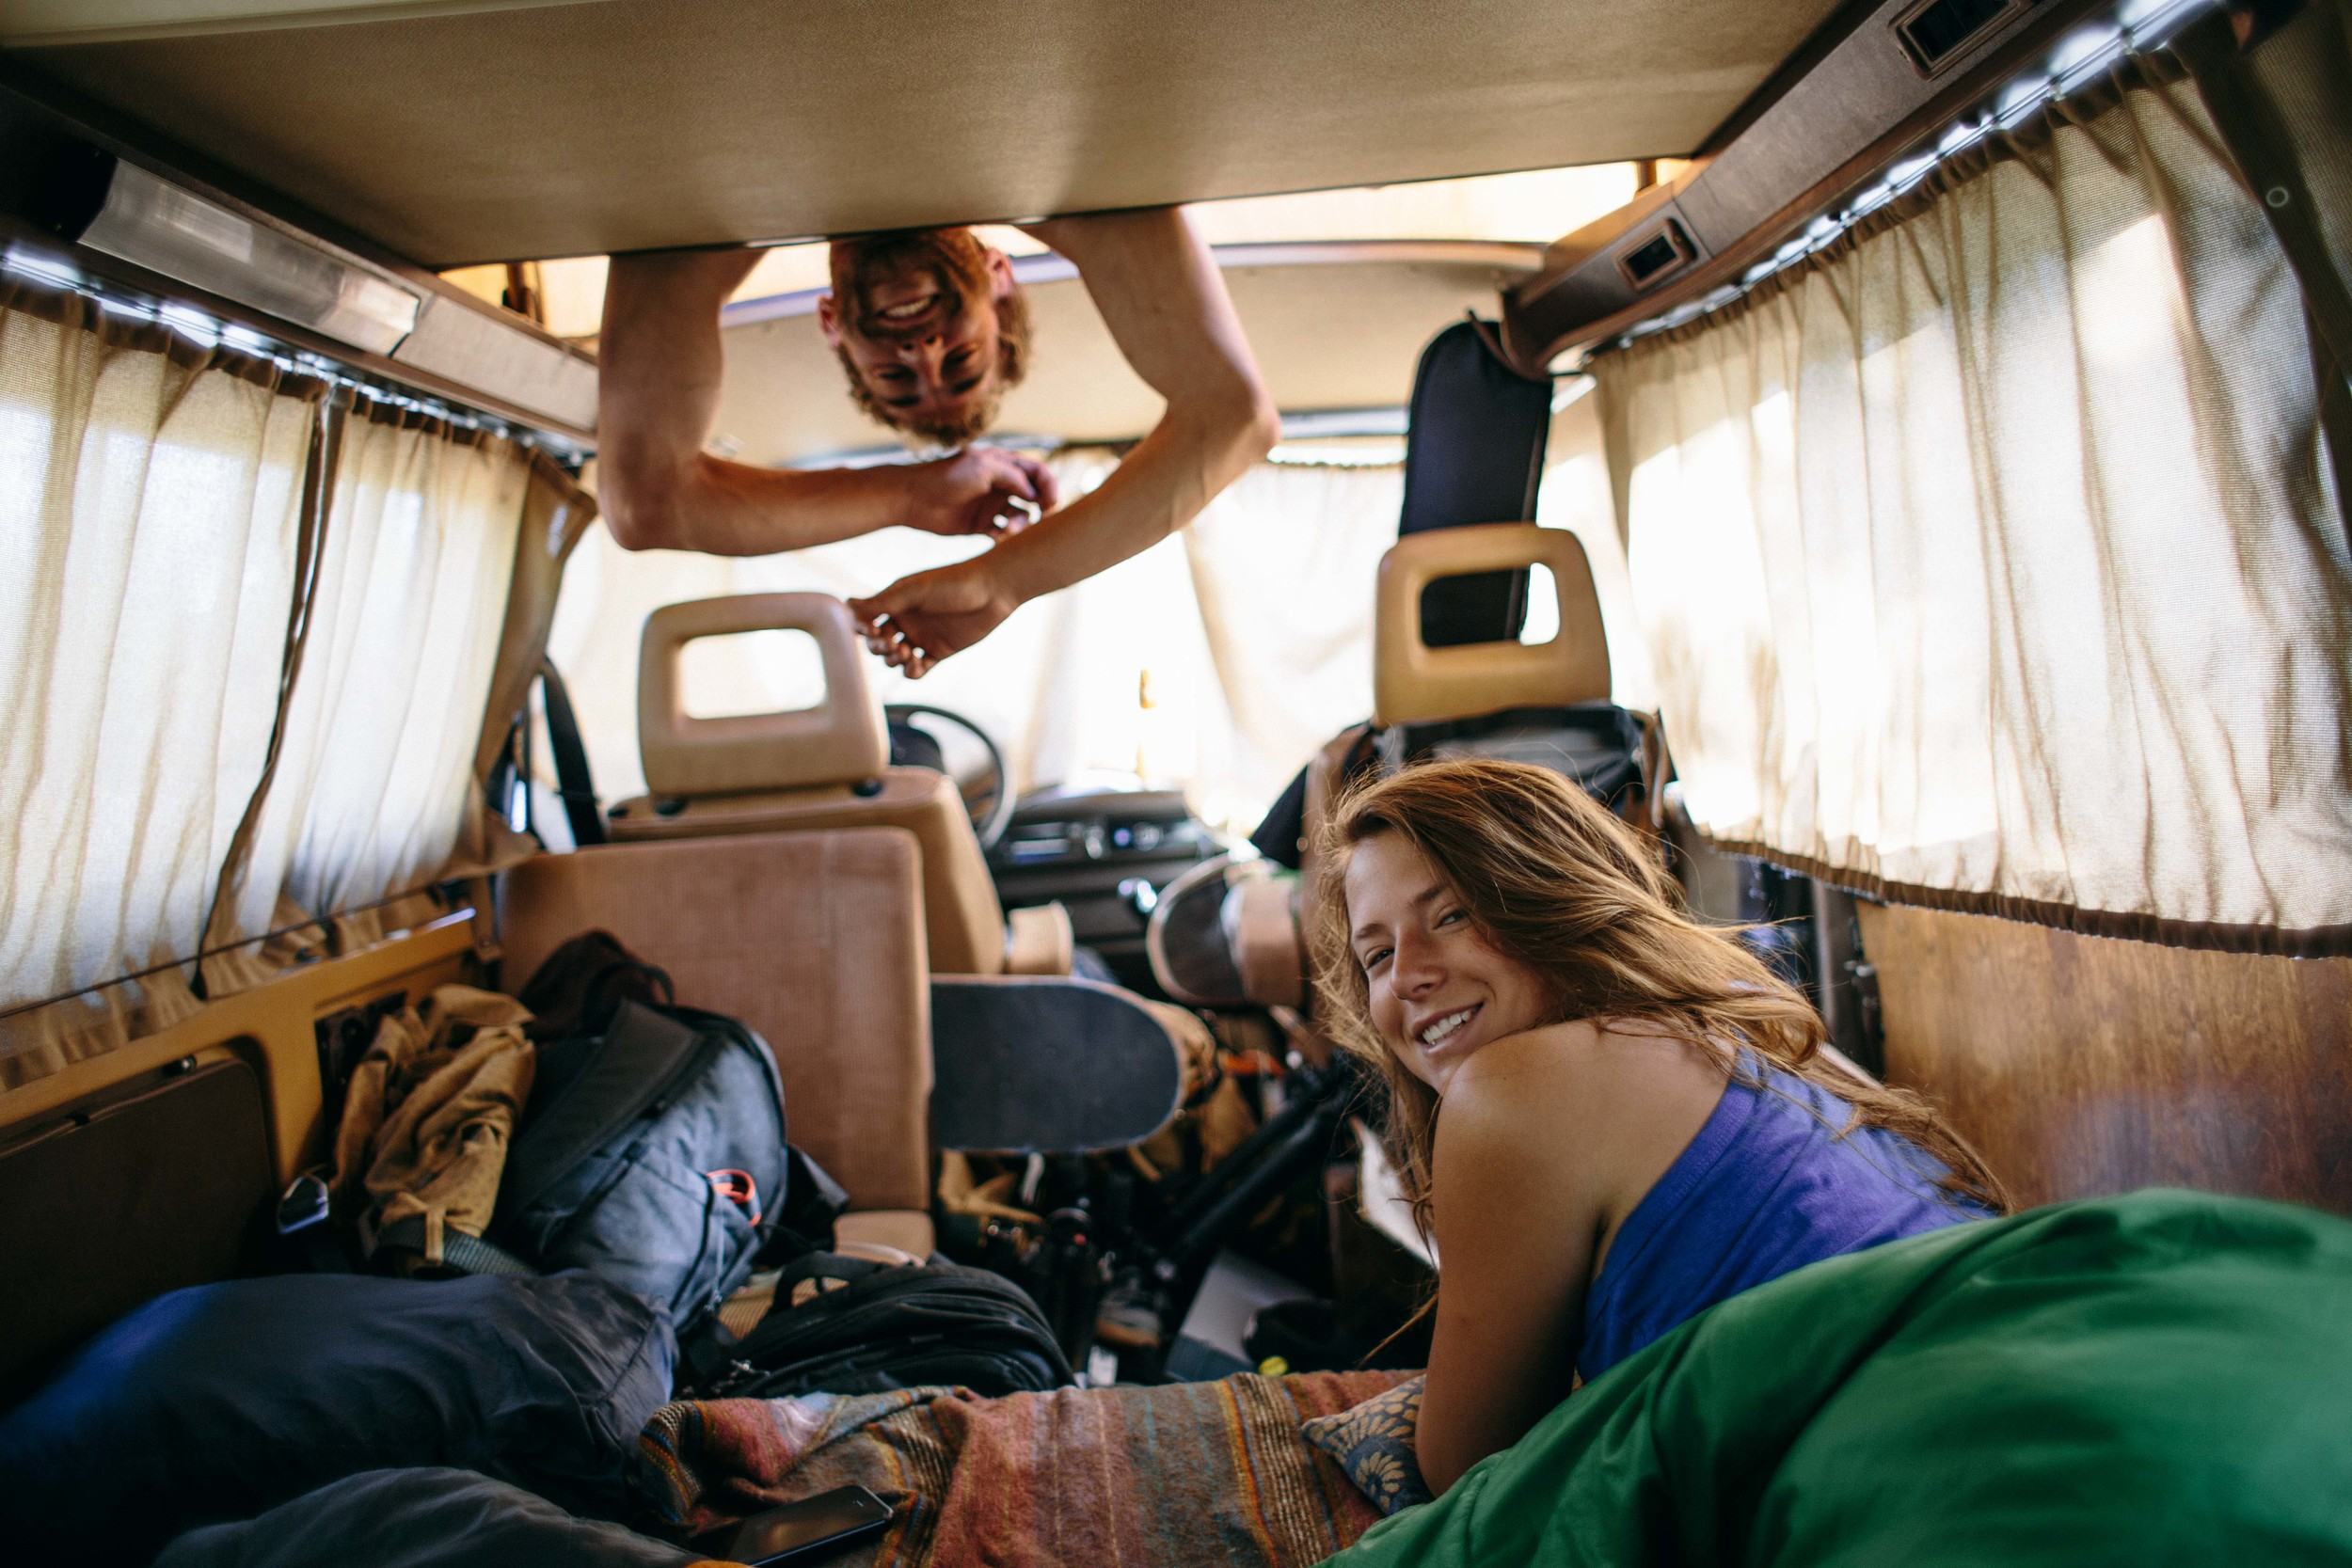 Every night's a slumber party in the van.